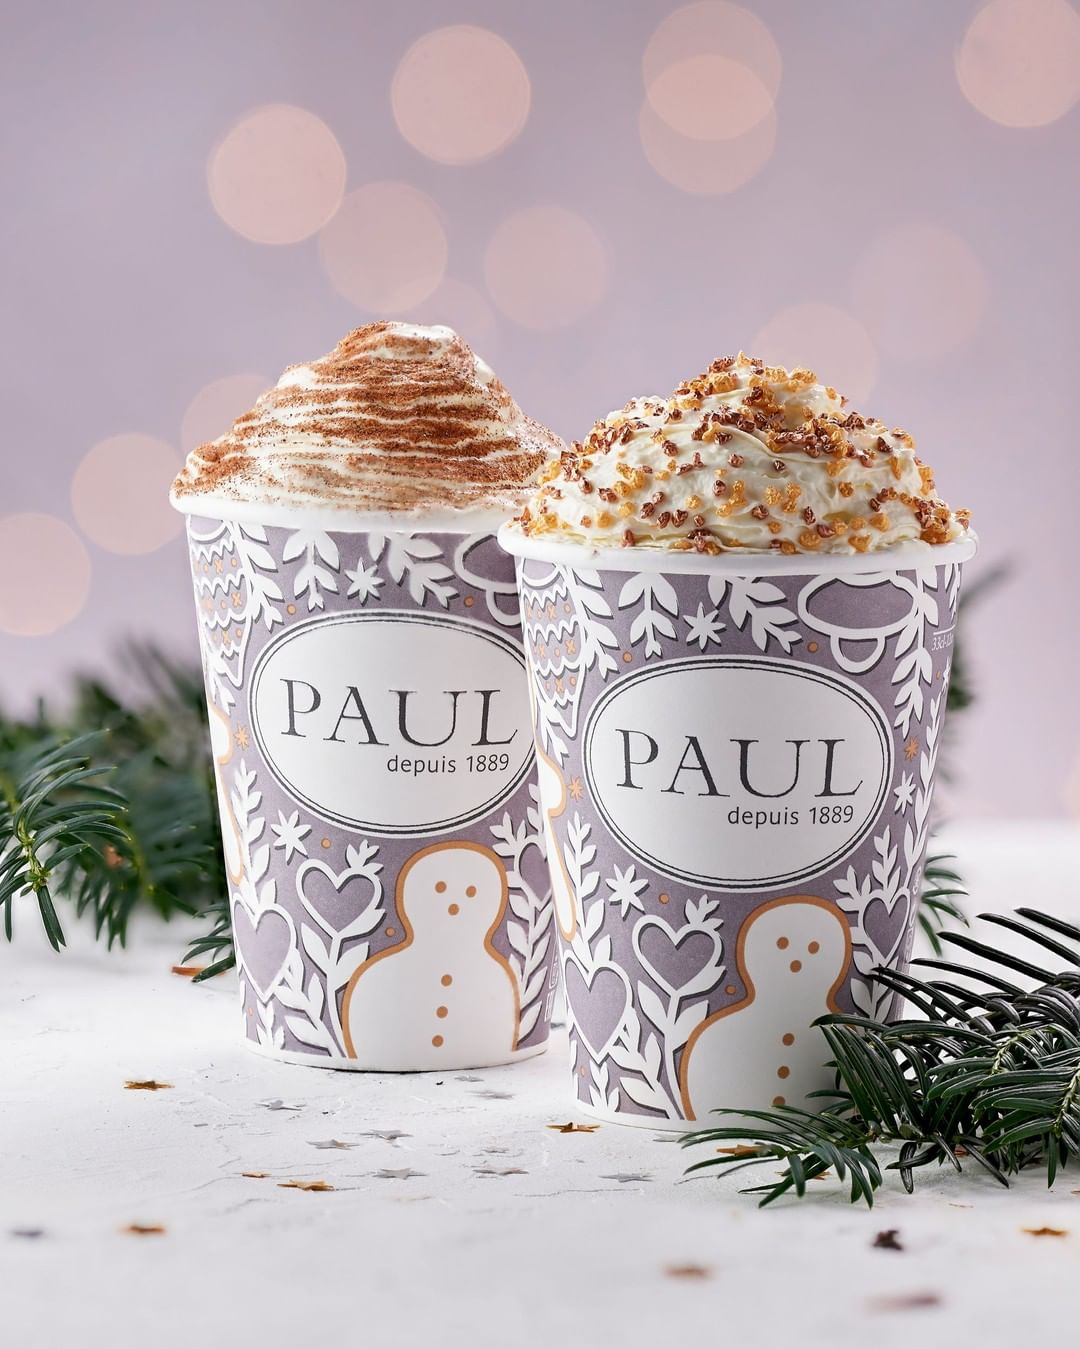 PAUL Bakery hot chocolate, PAUL Bakery festive drinks